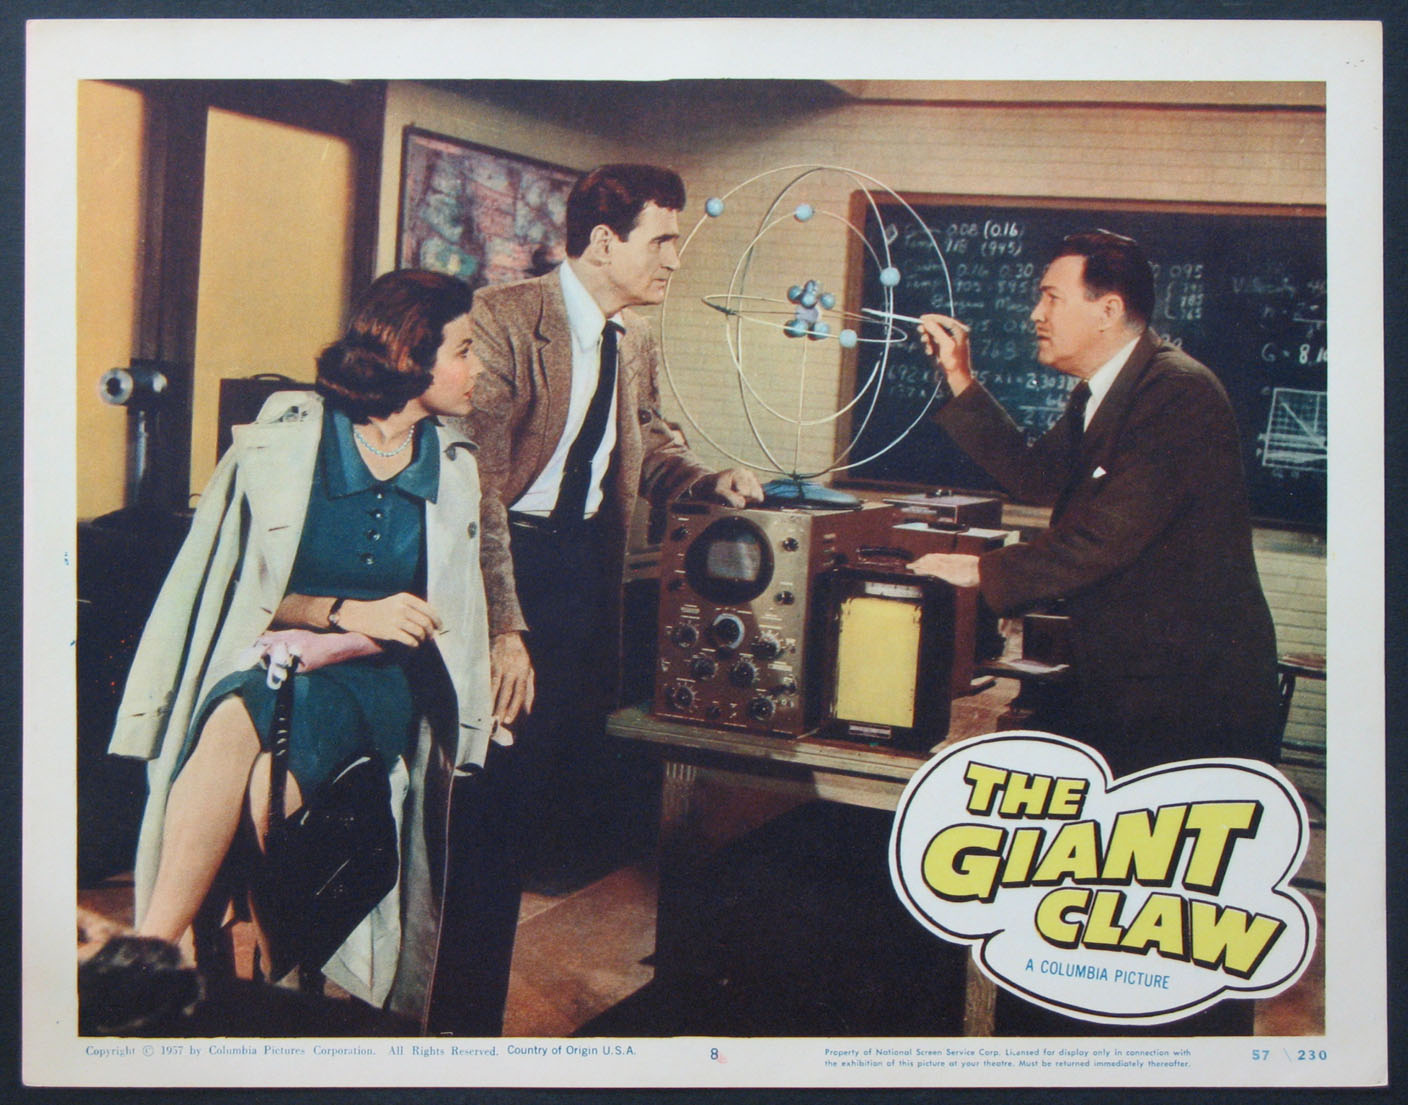 GIANT CLAW, THE (The Giant Claw) @ FilmPosters.com